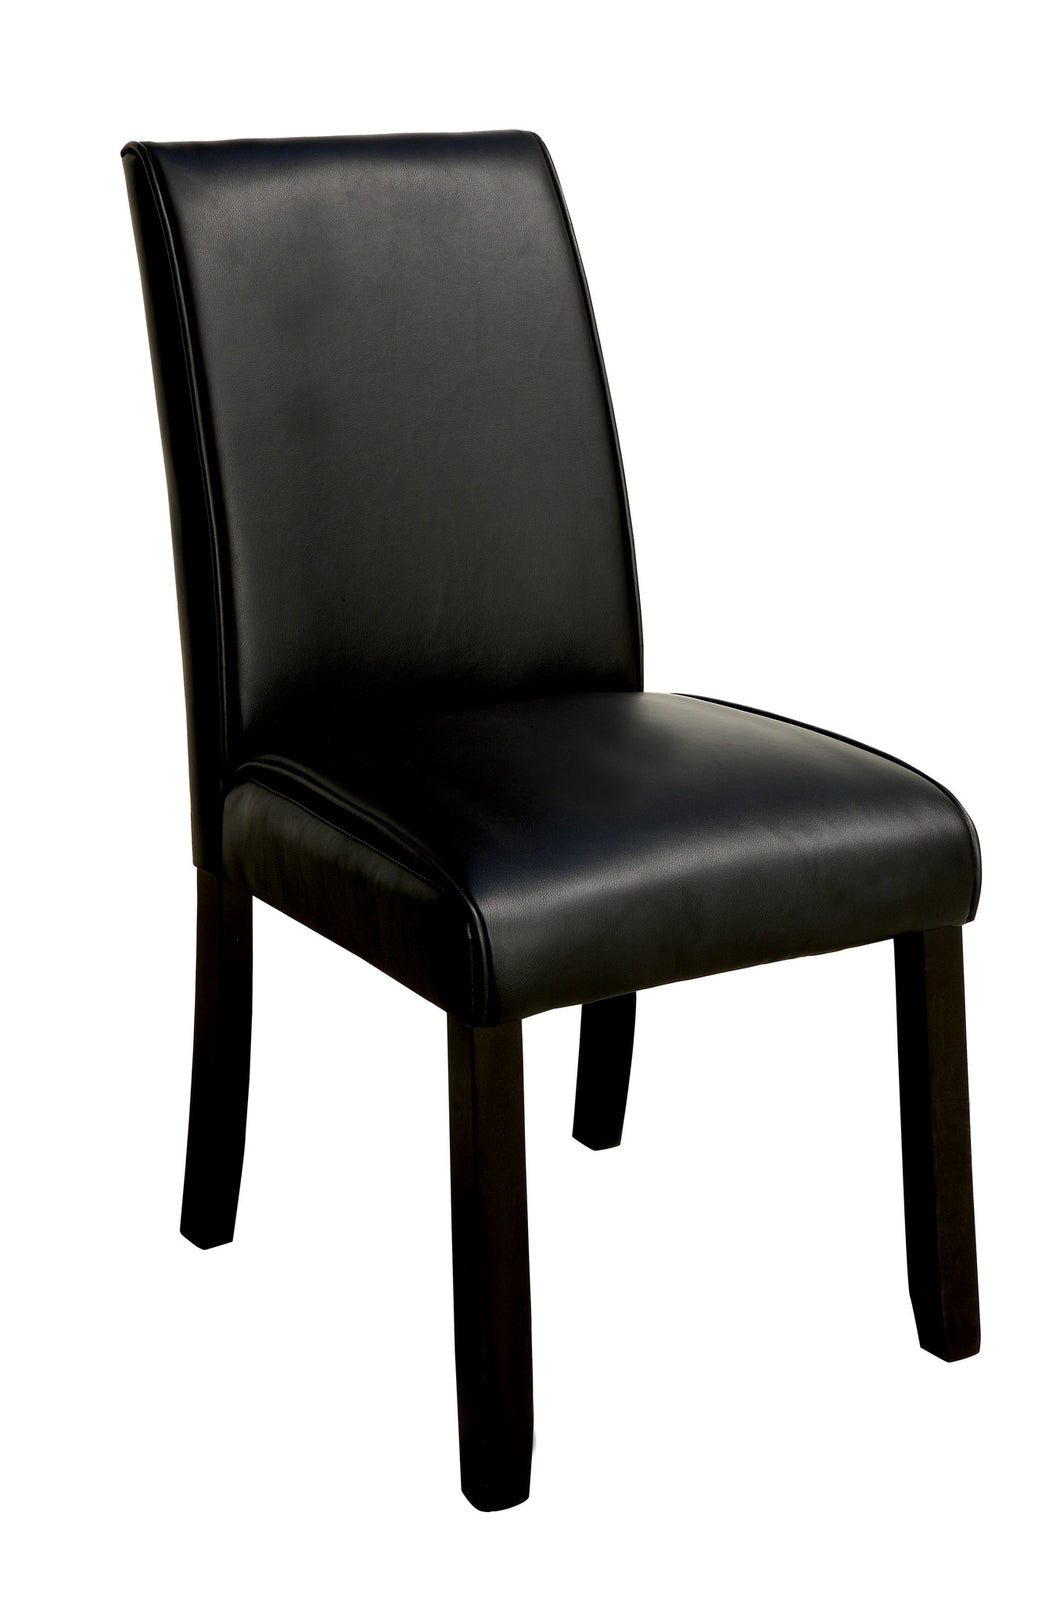 Ephraim Modern Leather Dining Chair, Set of 2